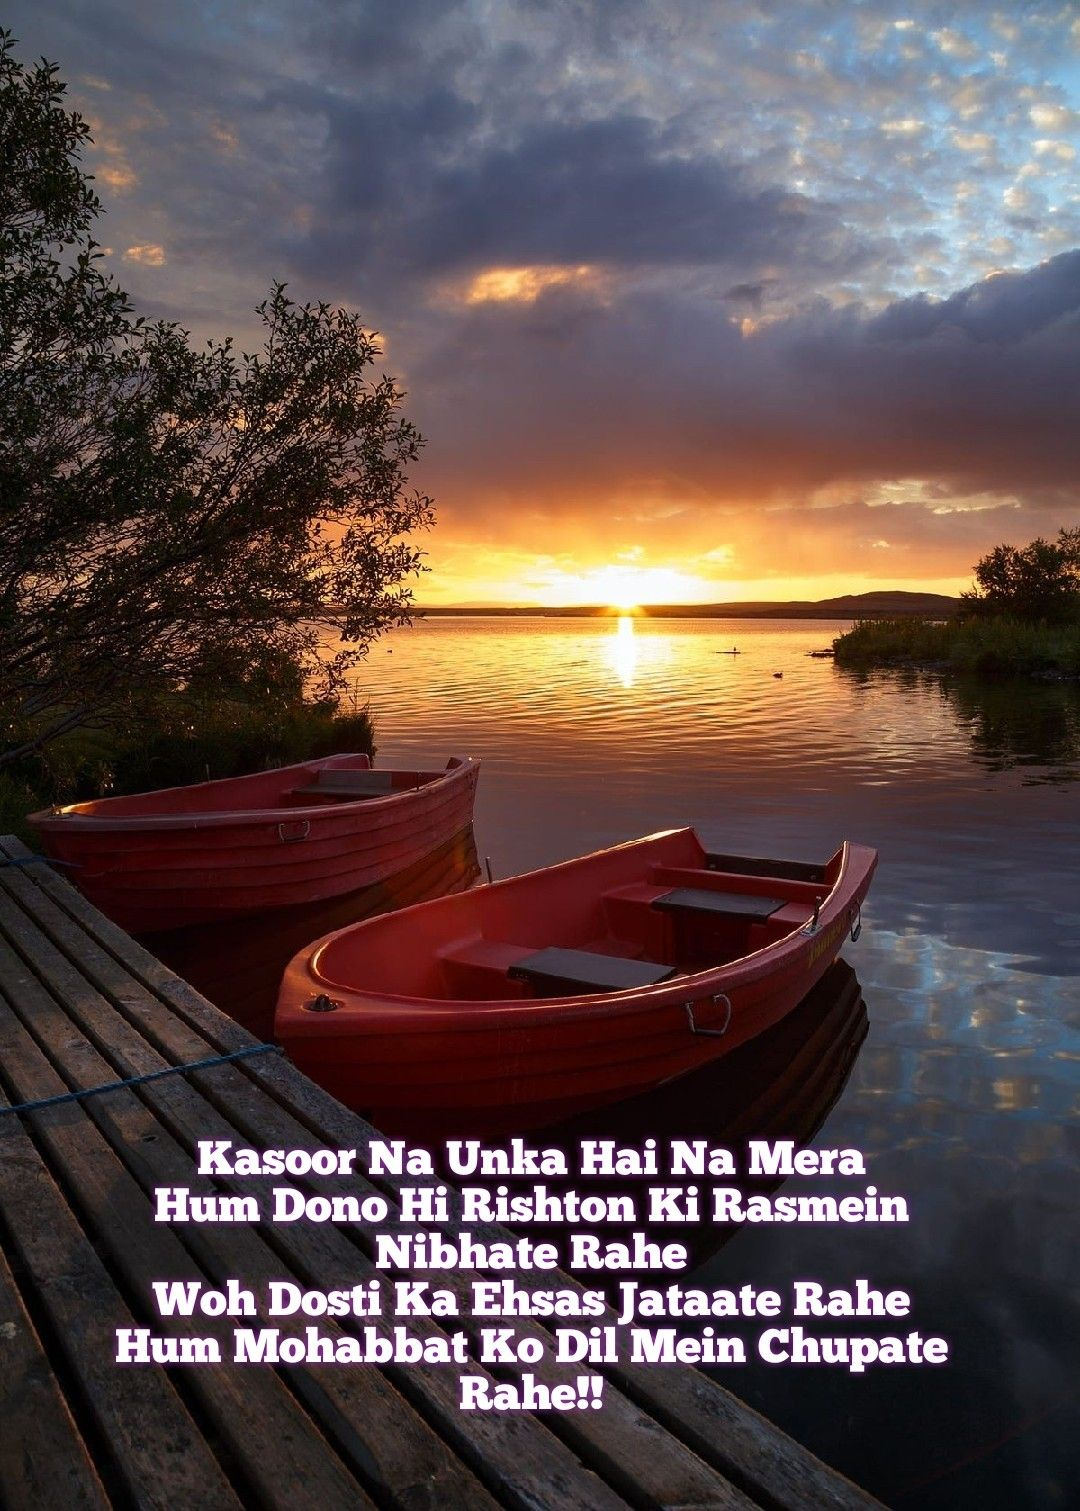 Pin by Pooja Rani on Feeling Boating license, Sunset